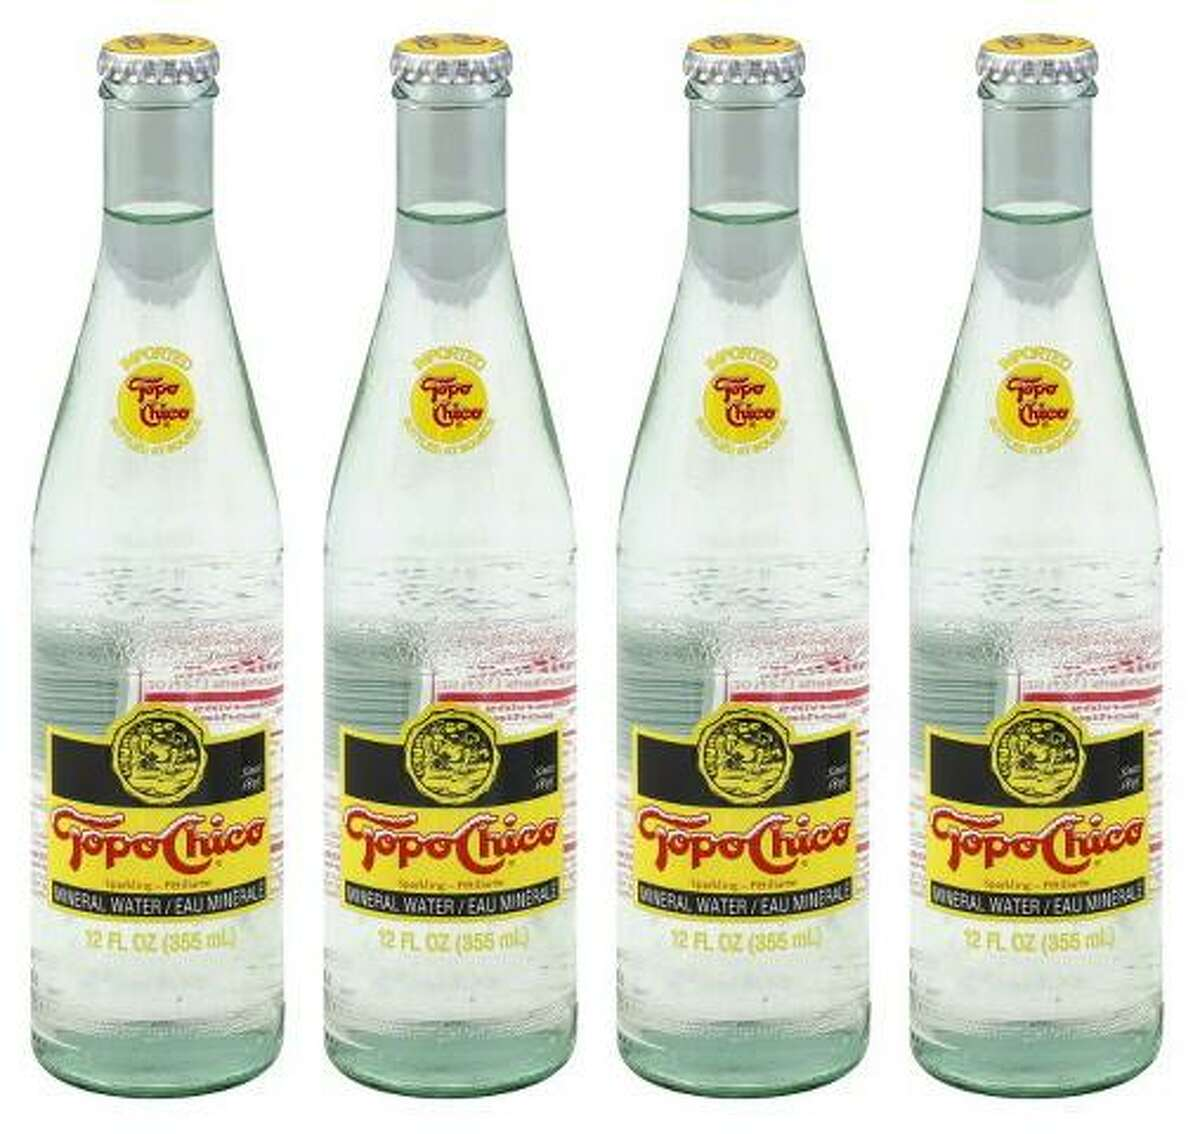 The glass shortage impacting Topo Chico is leading to purchasing limits at H-E-B.